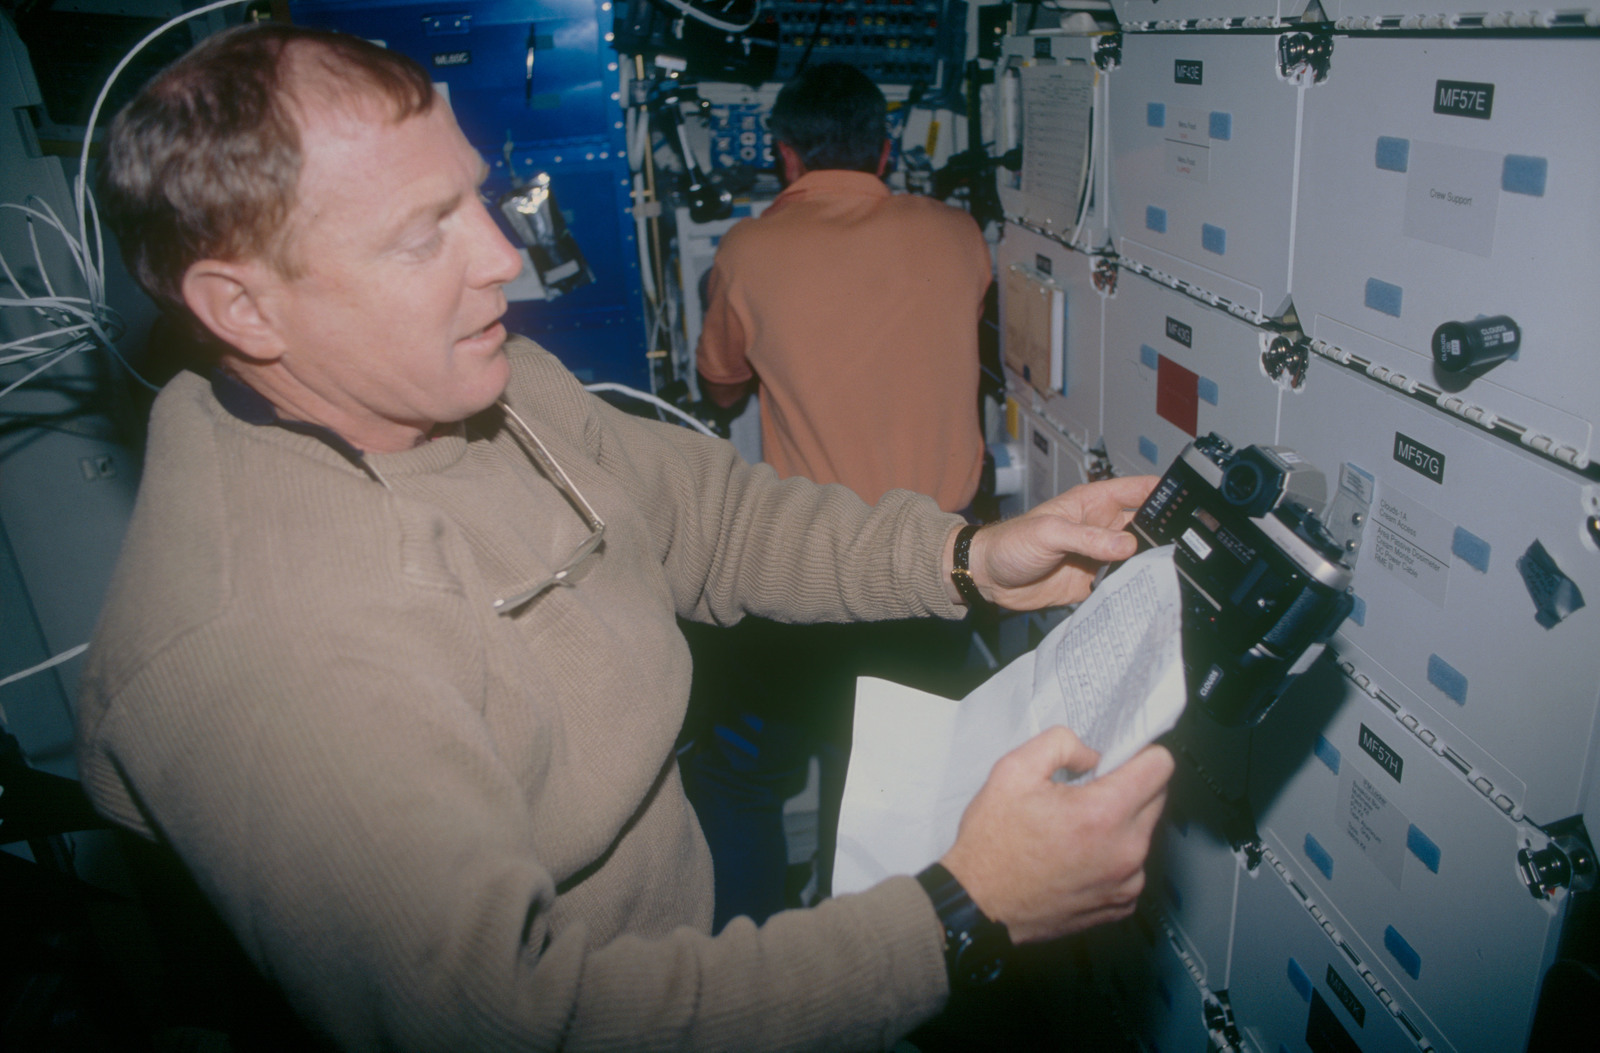 STS053-06-021 - STS-053 - Crewmember in the MDDK with a 35 mm camera and operating instructions